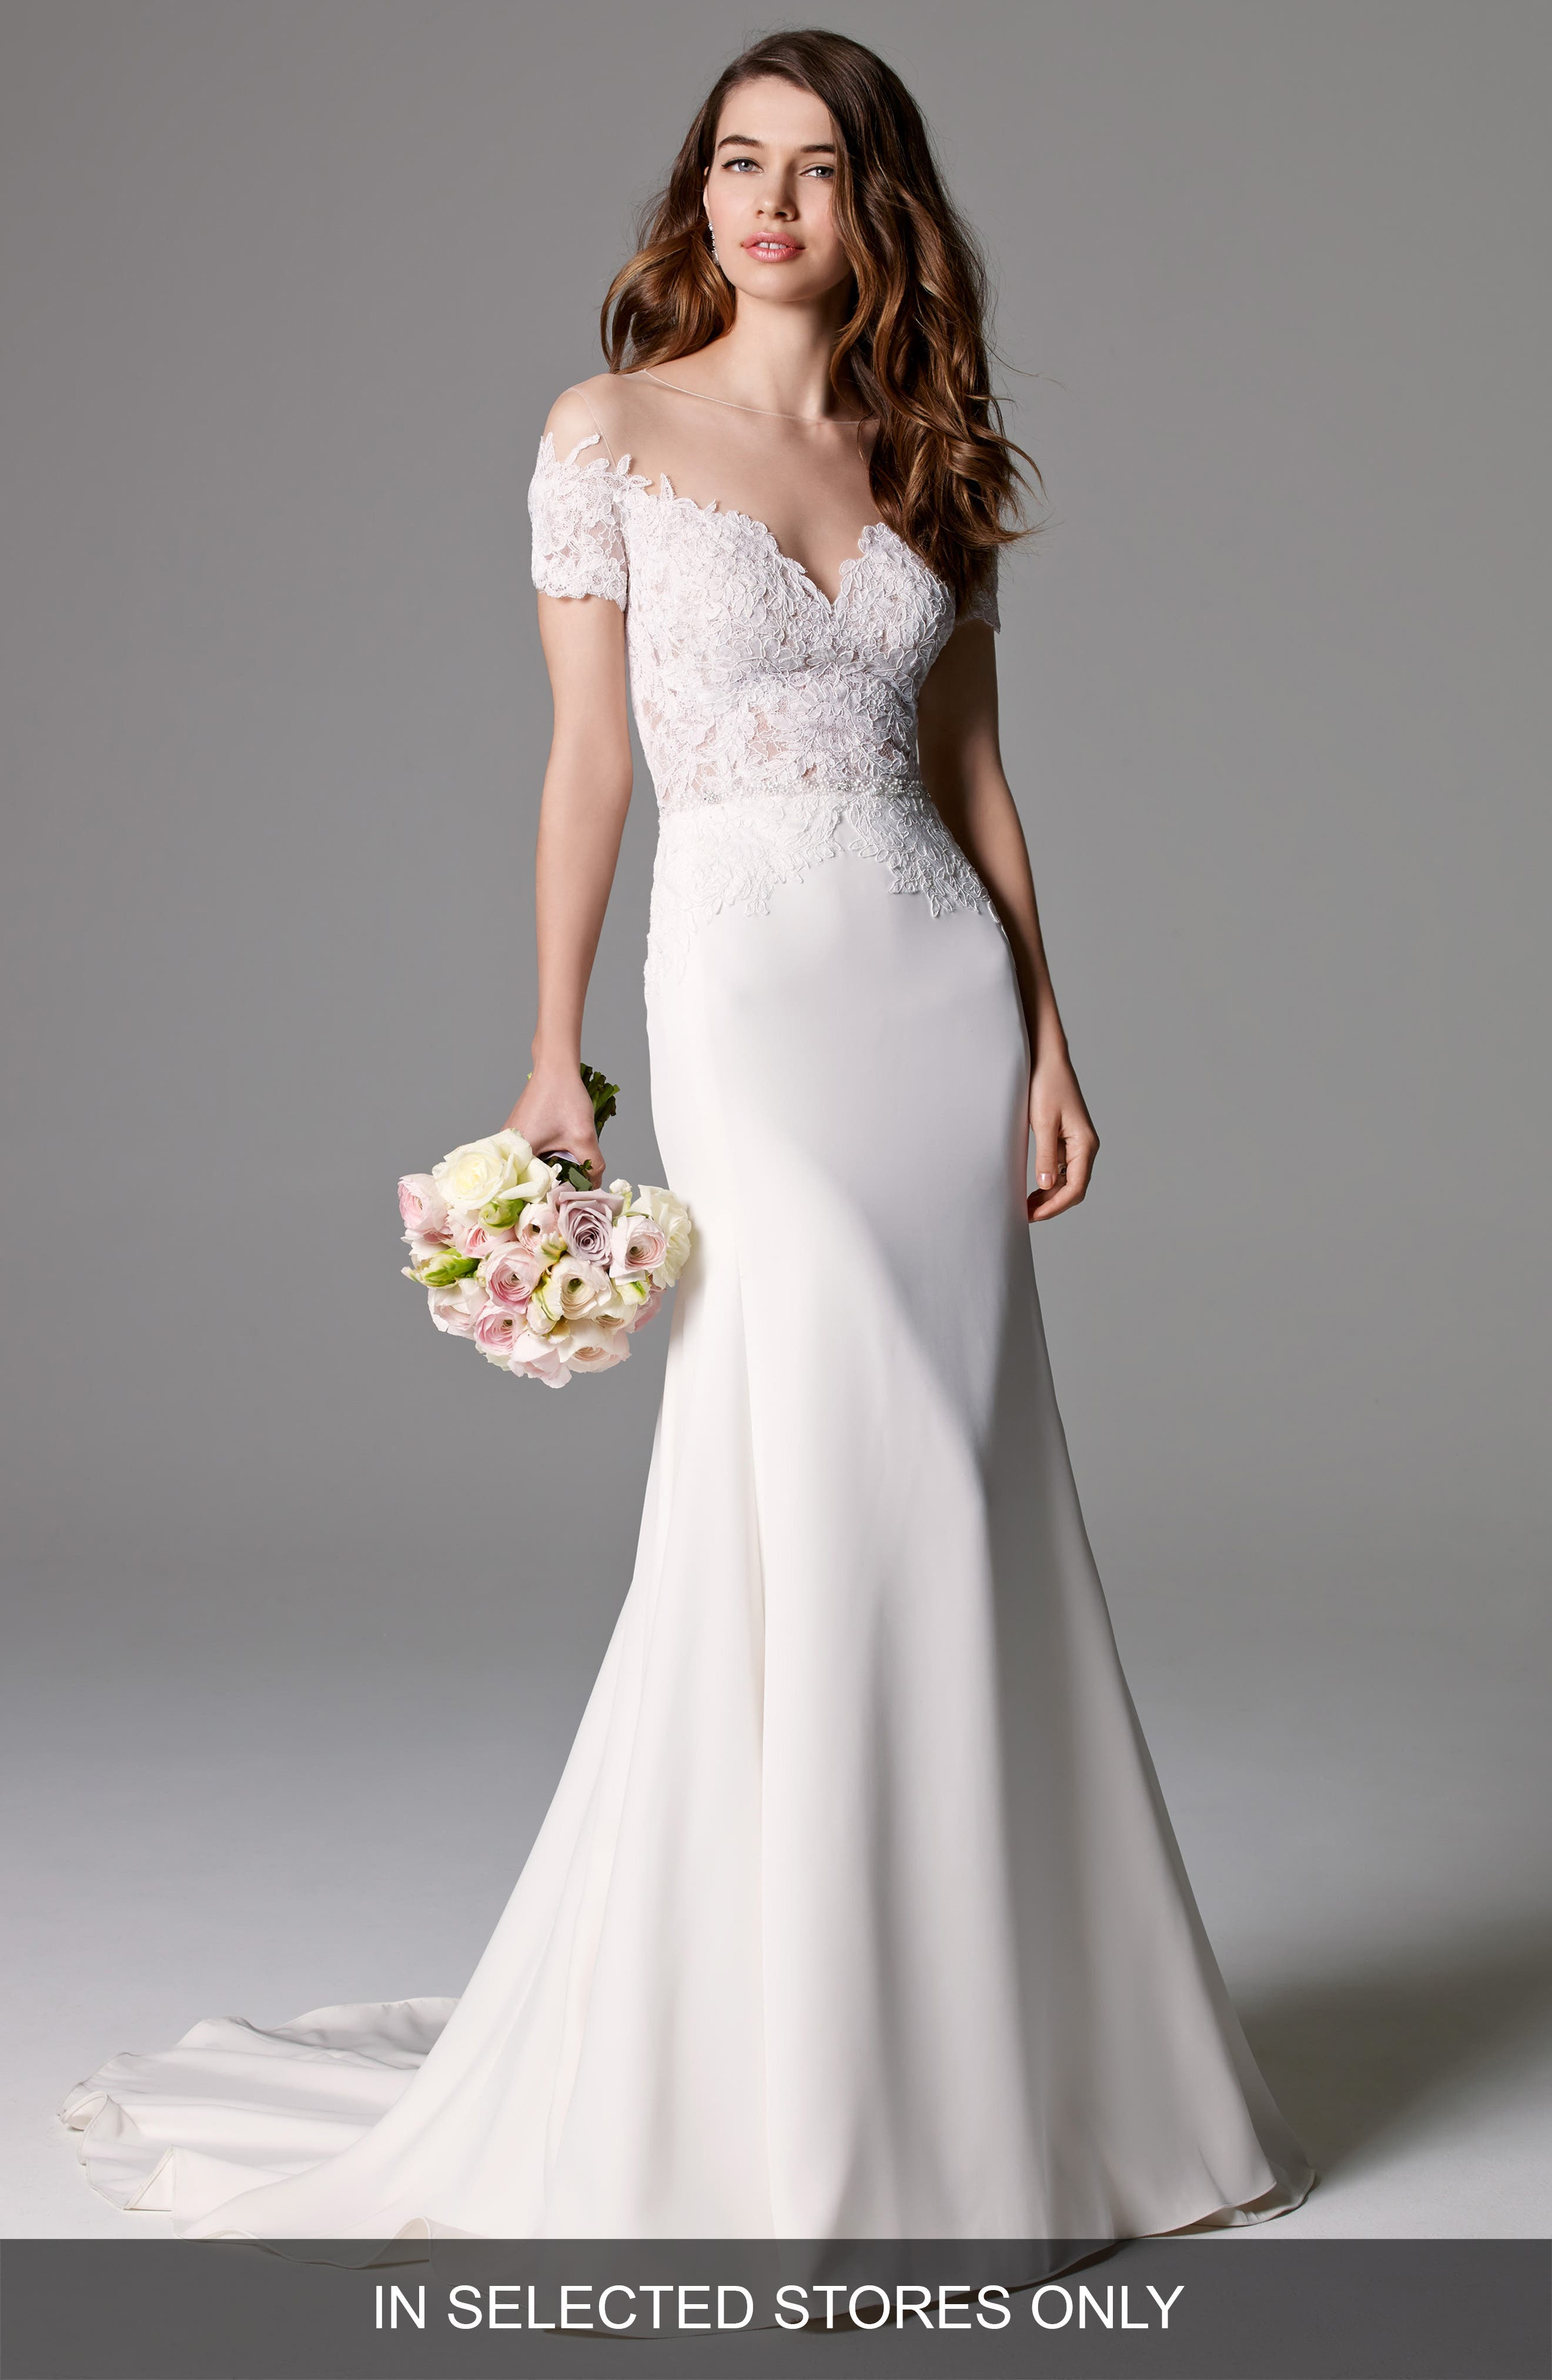 Alternate Image 1 Selected - Watters Seaton Illusion Off-the-Shoulder Lace & Georgette Trumpet Gown